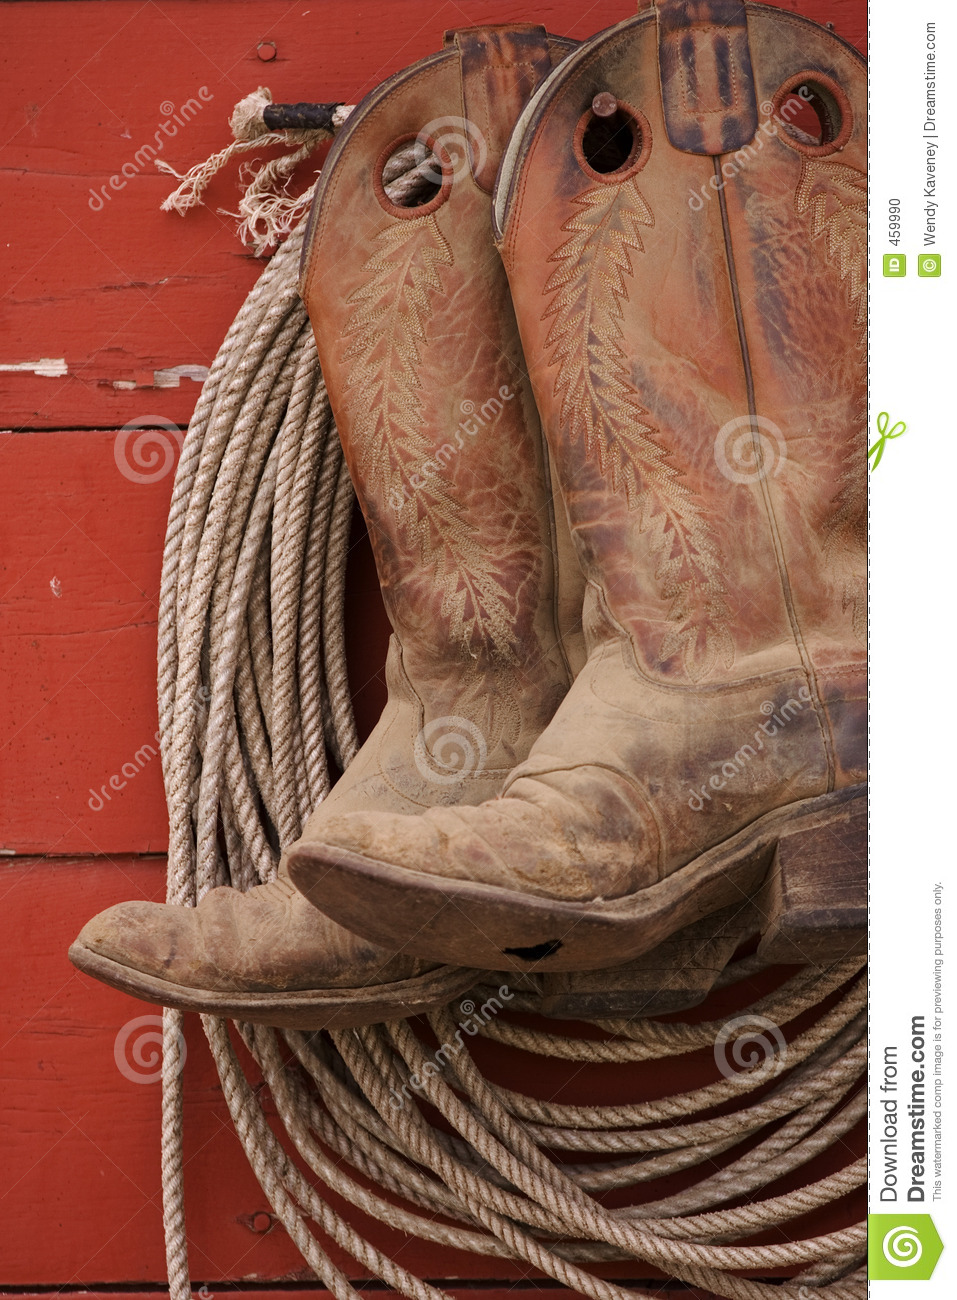 boots and rope stock photo image of apparel leather